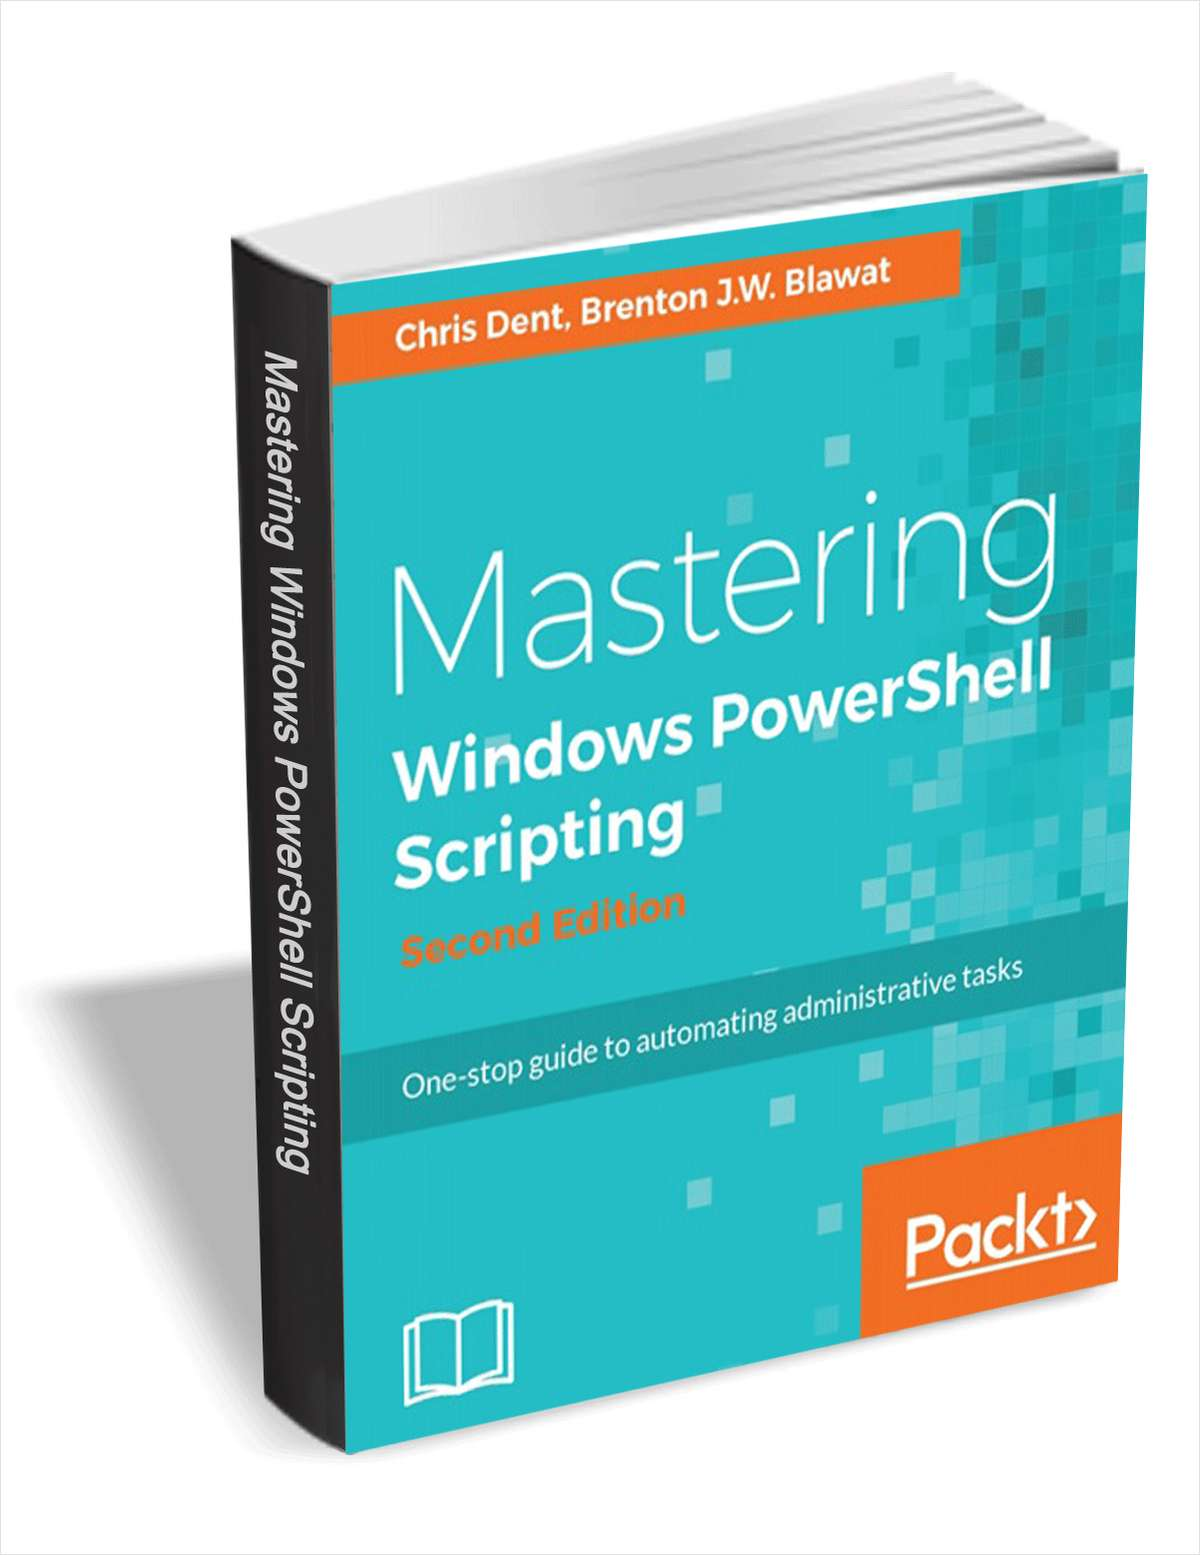 Mastering Windows PowerShell Scripting, 2nd Edition ($30 Value) FREE For a Limited Time